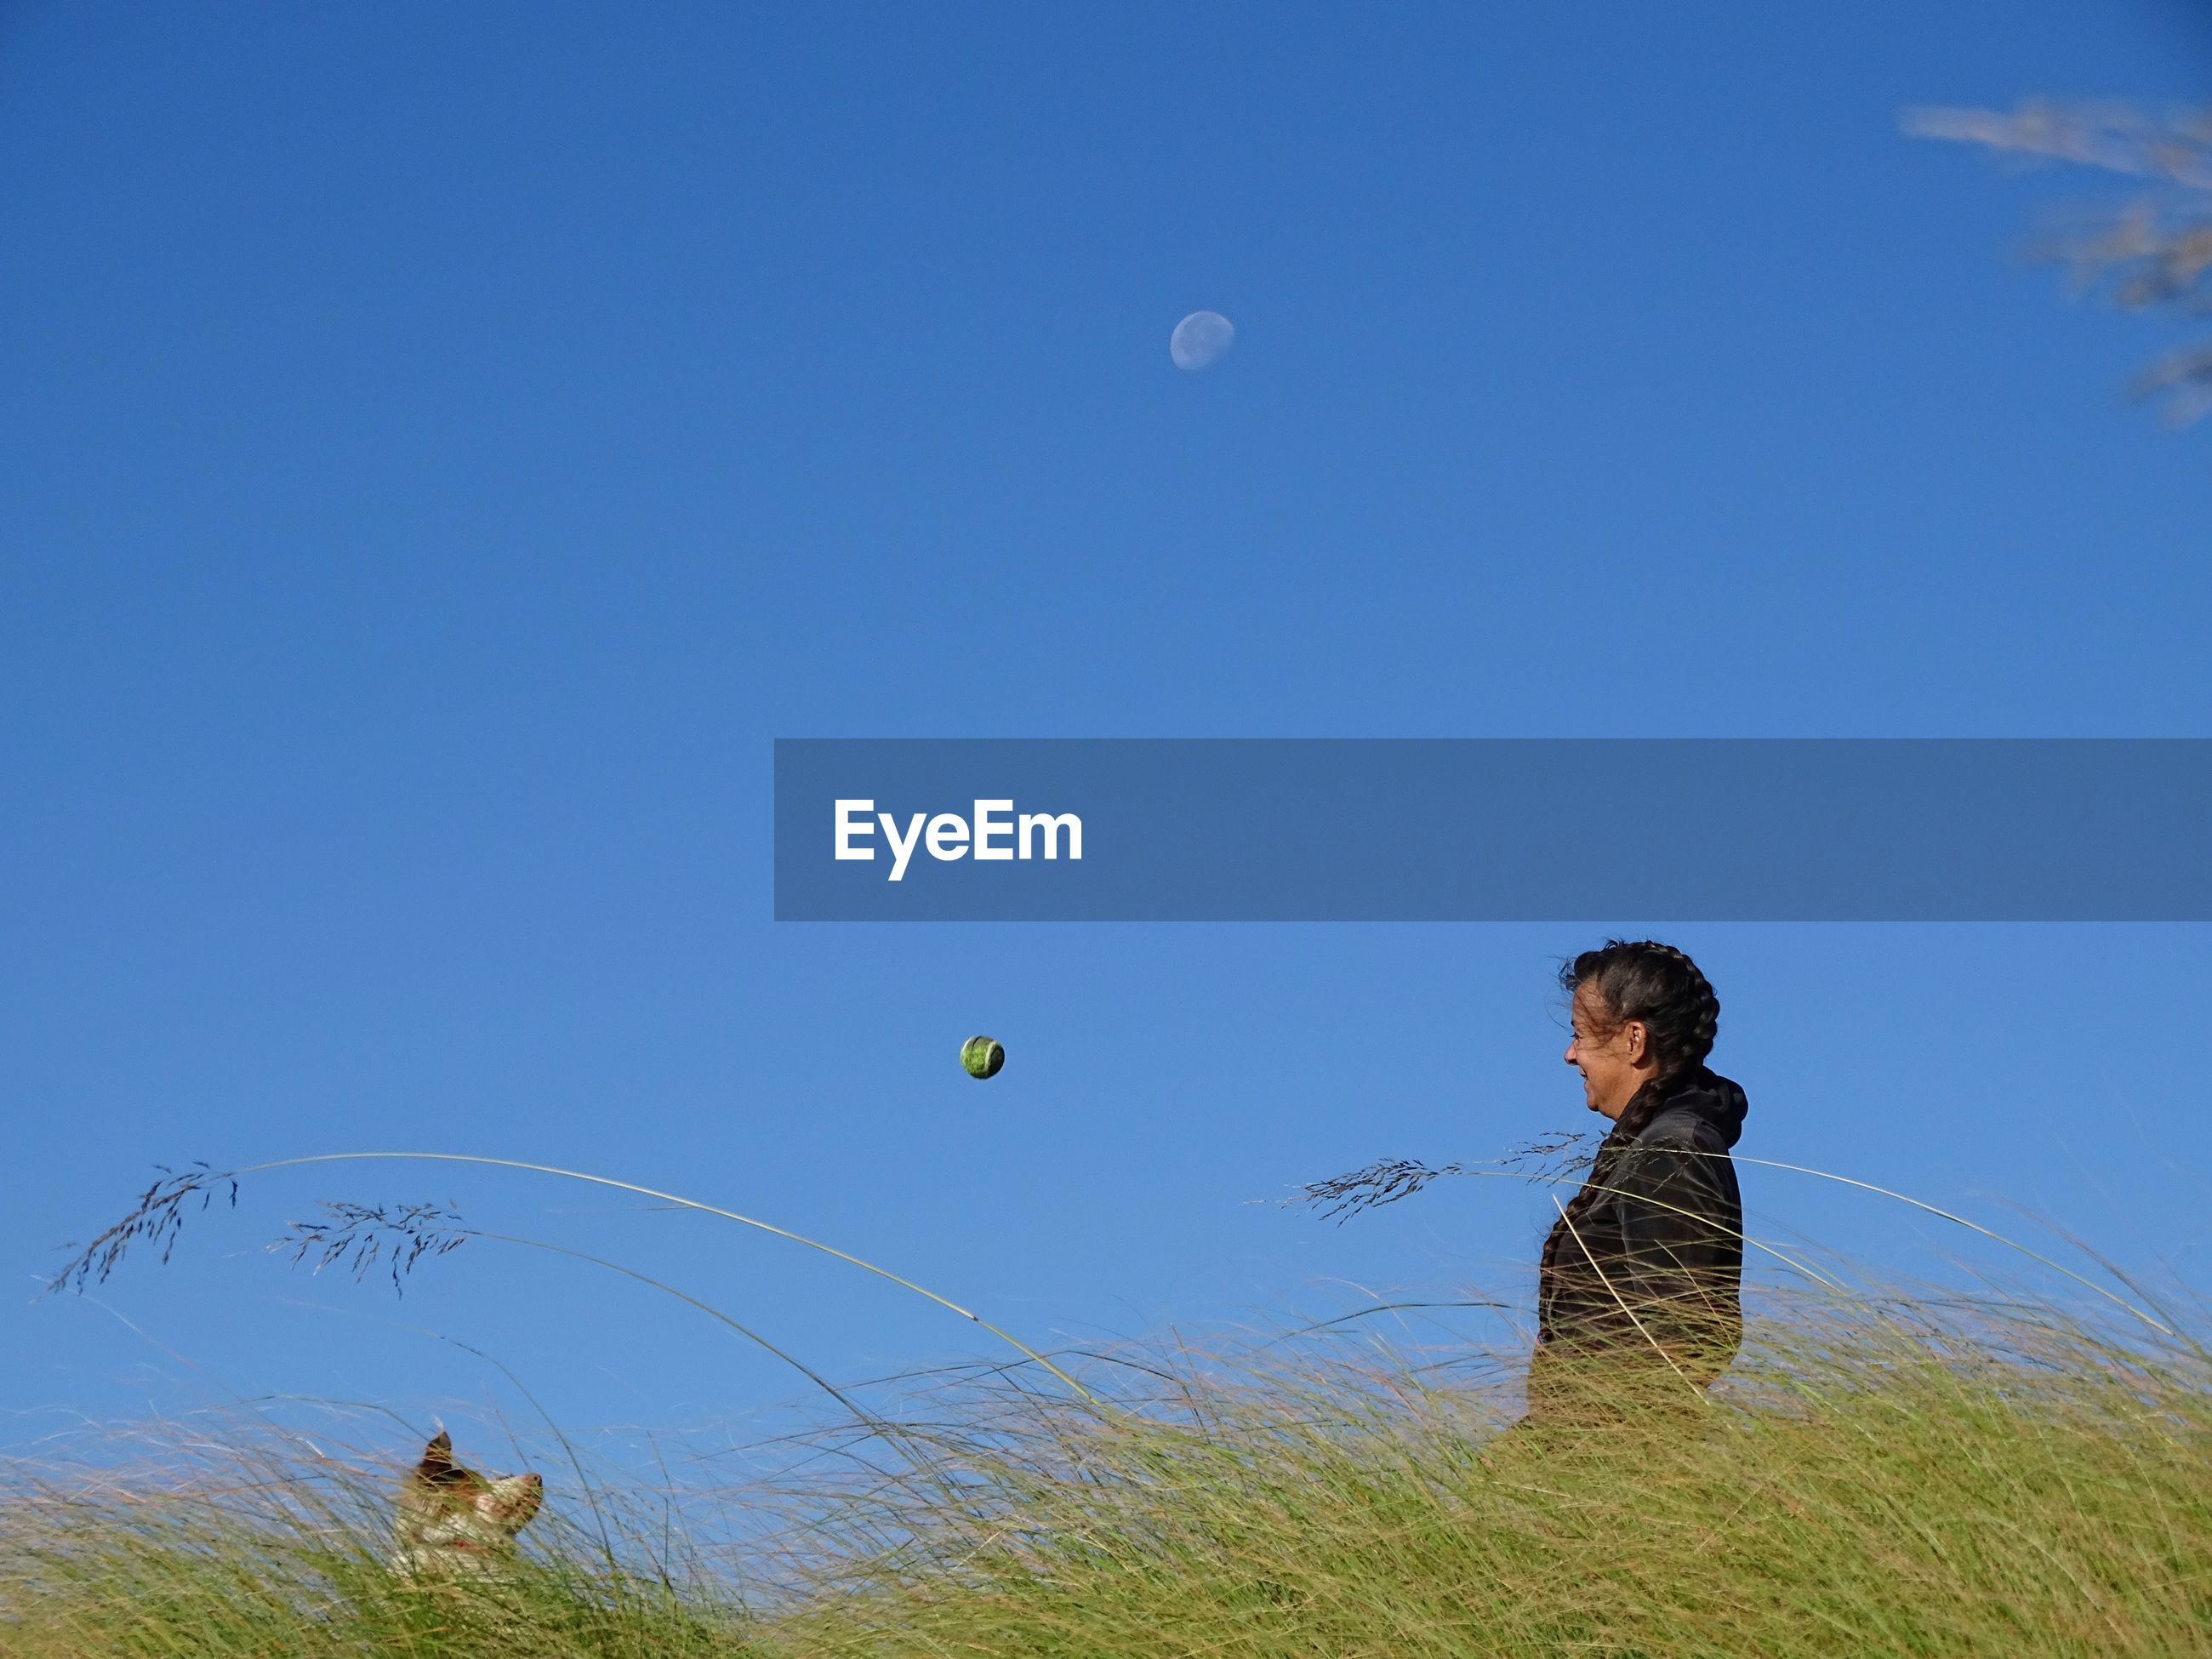 Side view of woman throwing ball towards dog on grassy field against clear blue sky